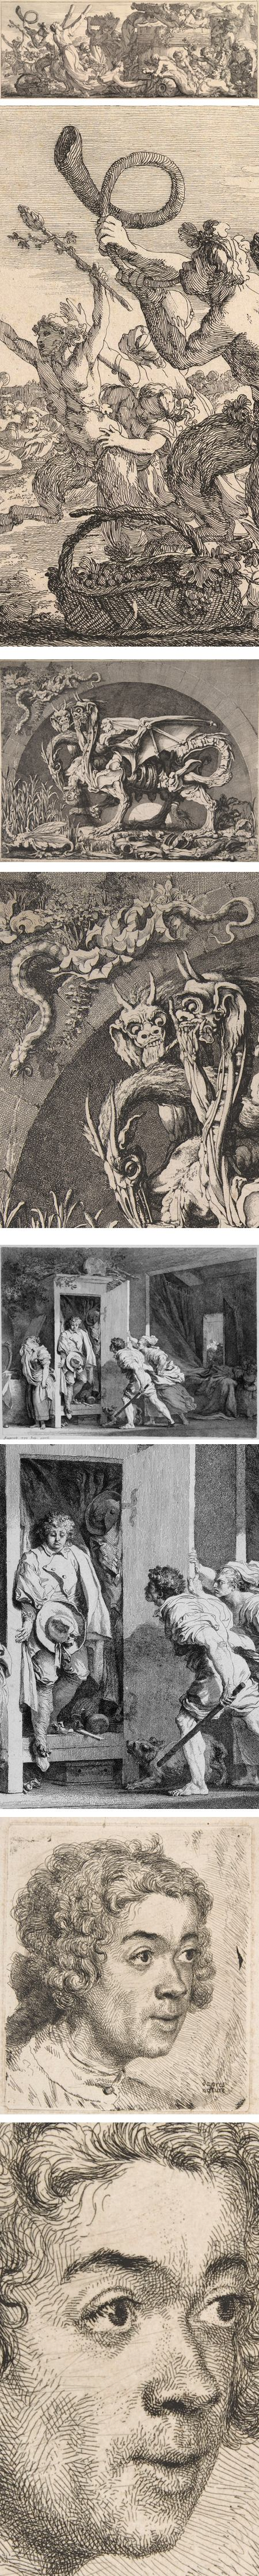 Artists and Amateurs: Etching in Eighteenth-Century France: Joseph Marie Vien, Louis Jean Desprez, Jean Honore Fragonard, Jean Etienne Liotard